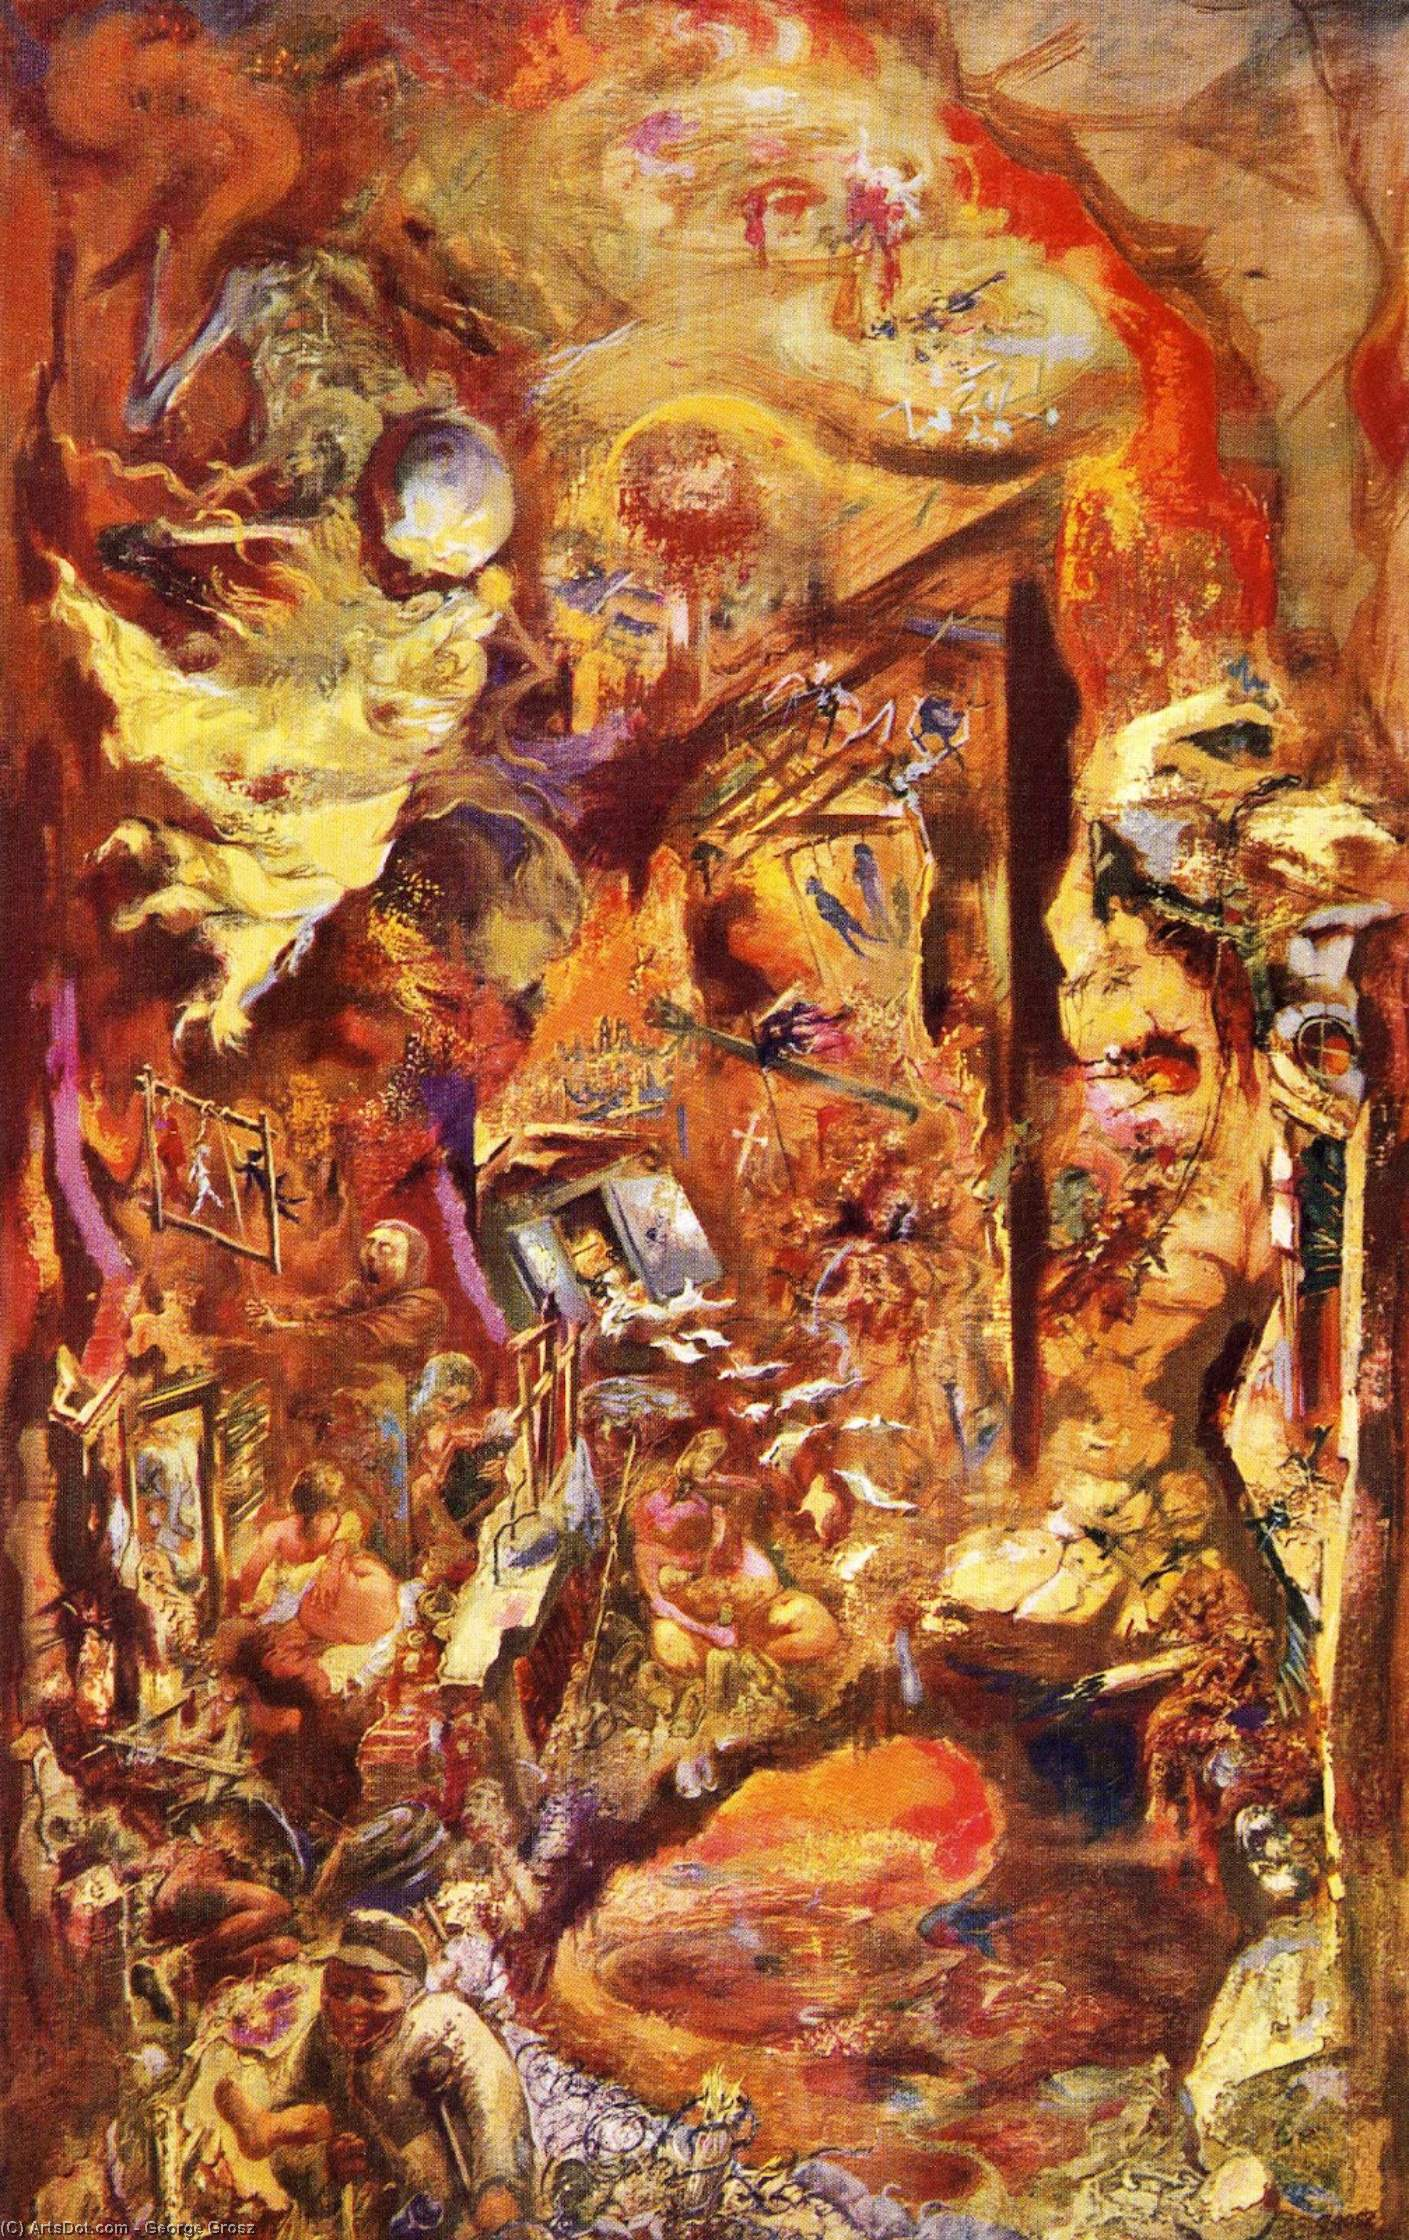 the work of german artists george grosz and otto dix in post world war i germany Aftermath: art in the wake of world war one 150 works from 1916 to 1932 by artists including george grosz  george grosz's grey day 1921 and otto dix's.